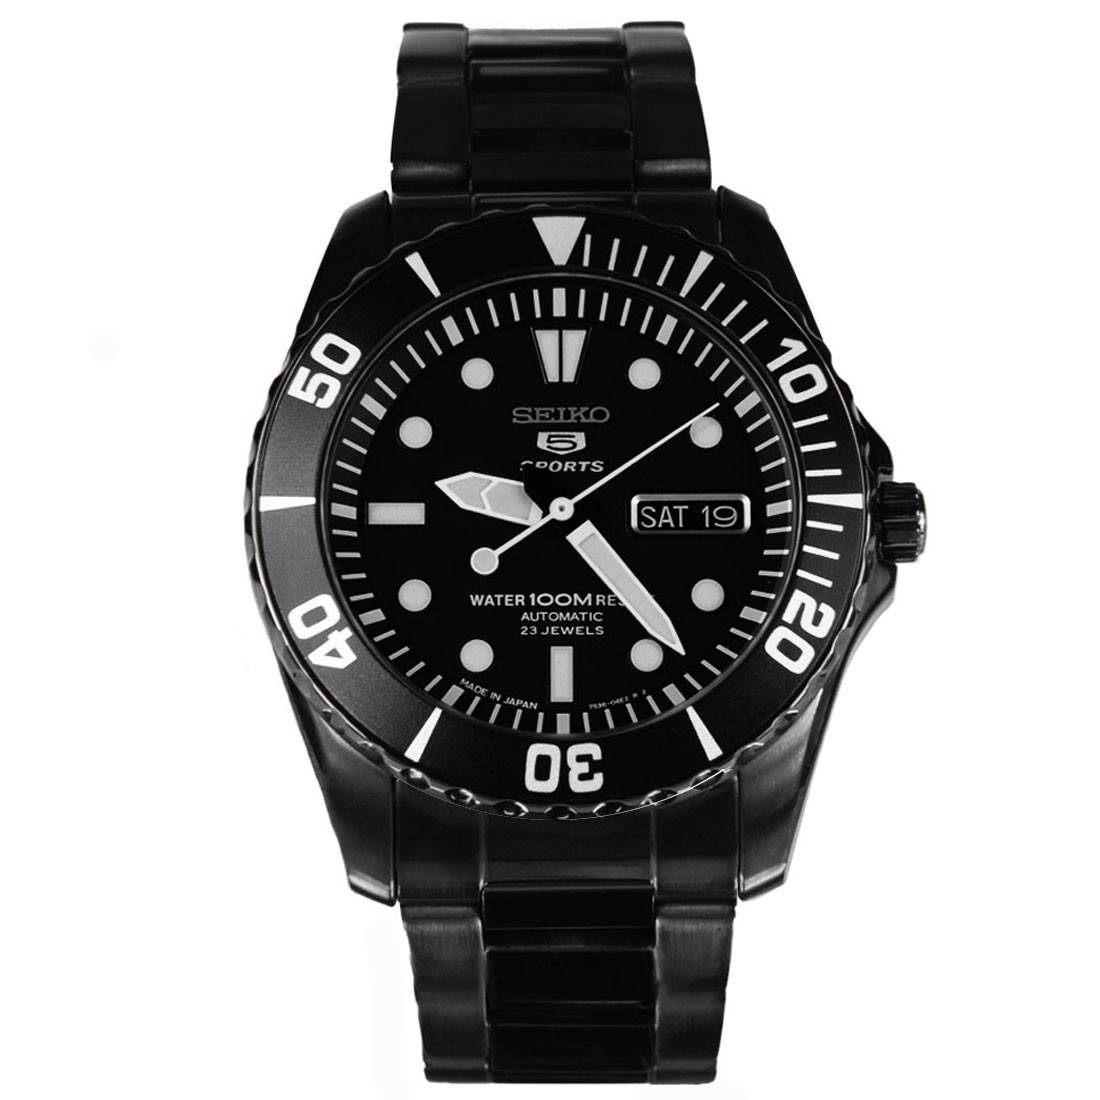 SEIKO 5 SNZF21J1 AUTOMATIC DIVING WATCH SNZF21J